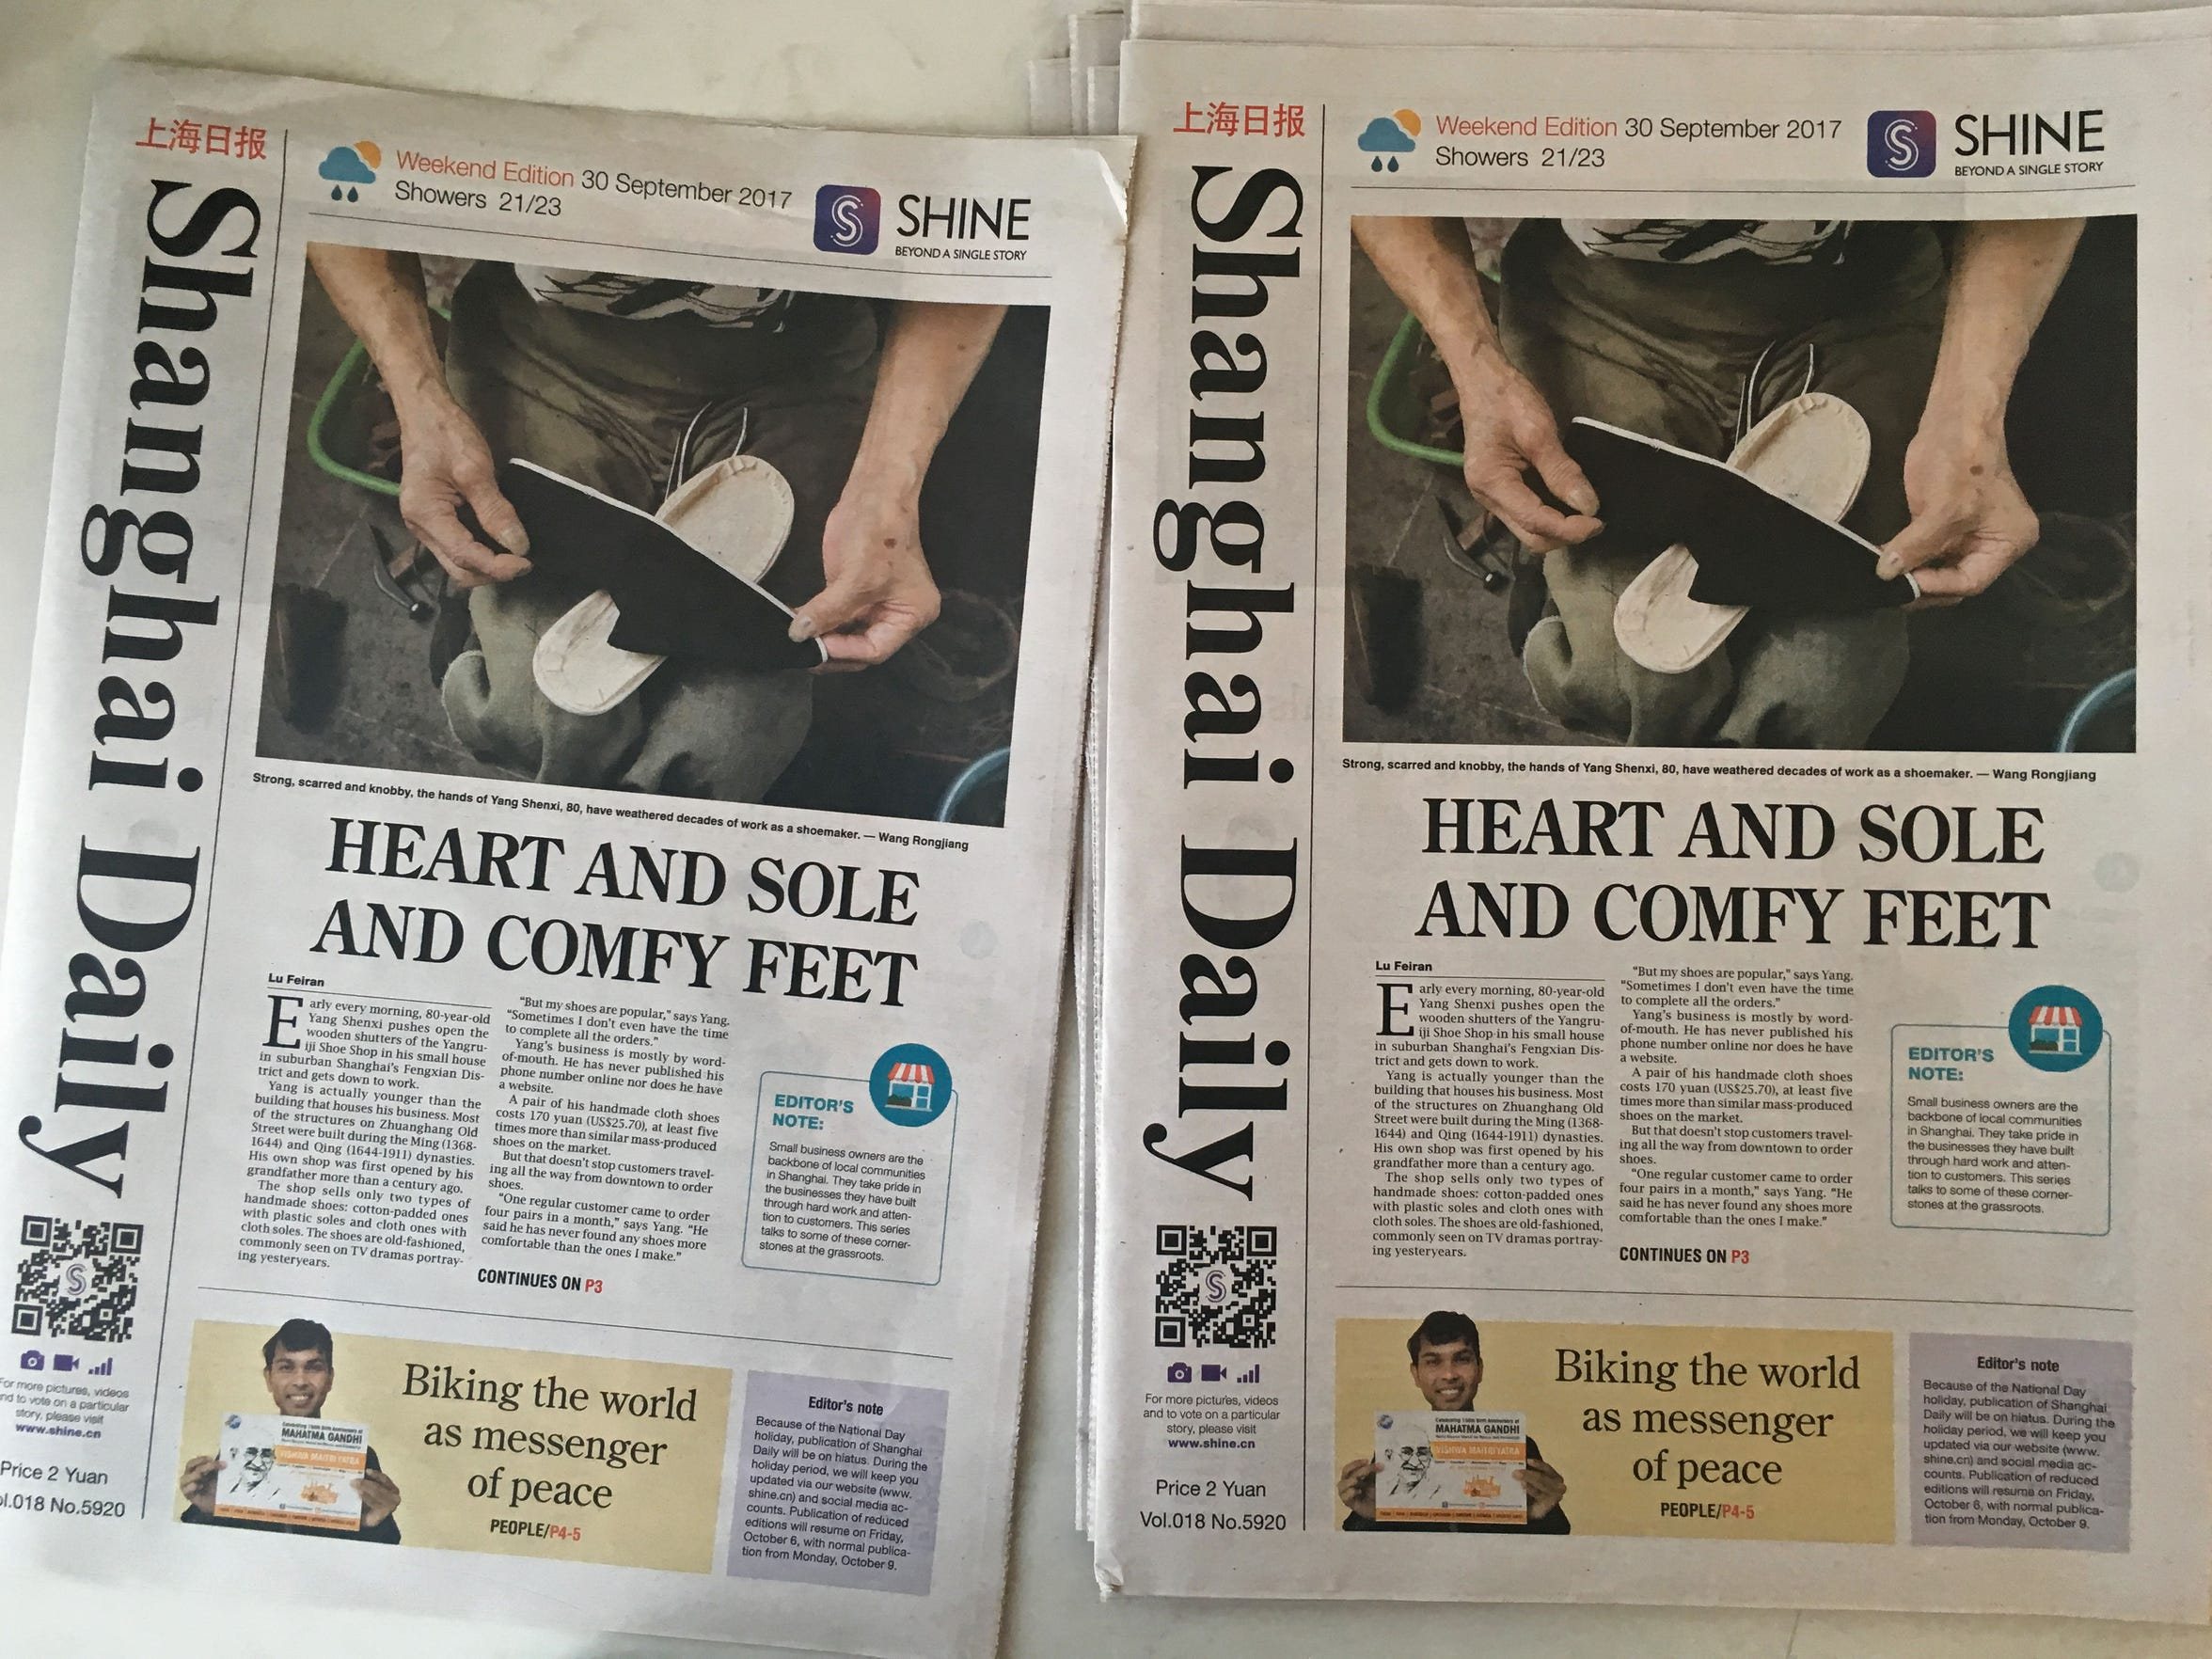 Copies of the Shanghai Daily set out on a table in the Daily's newsroom on Sunday, Sept. 30, 2017, in Shanghai, China.